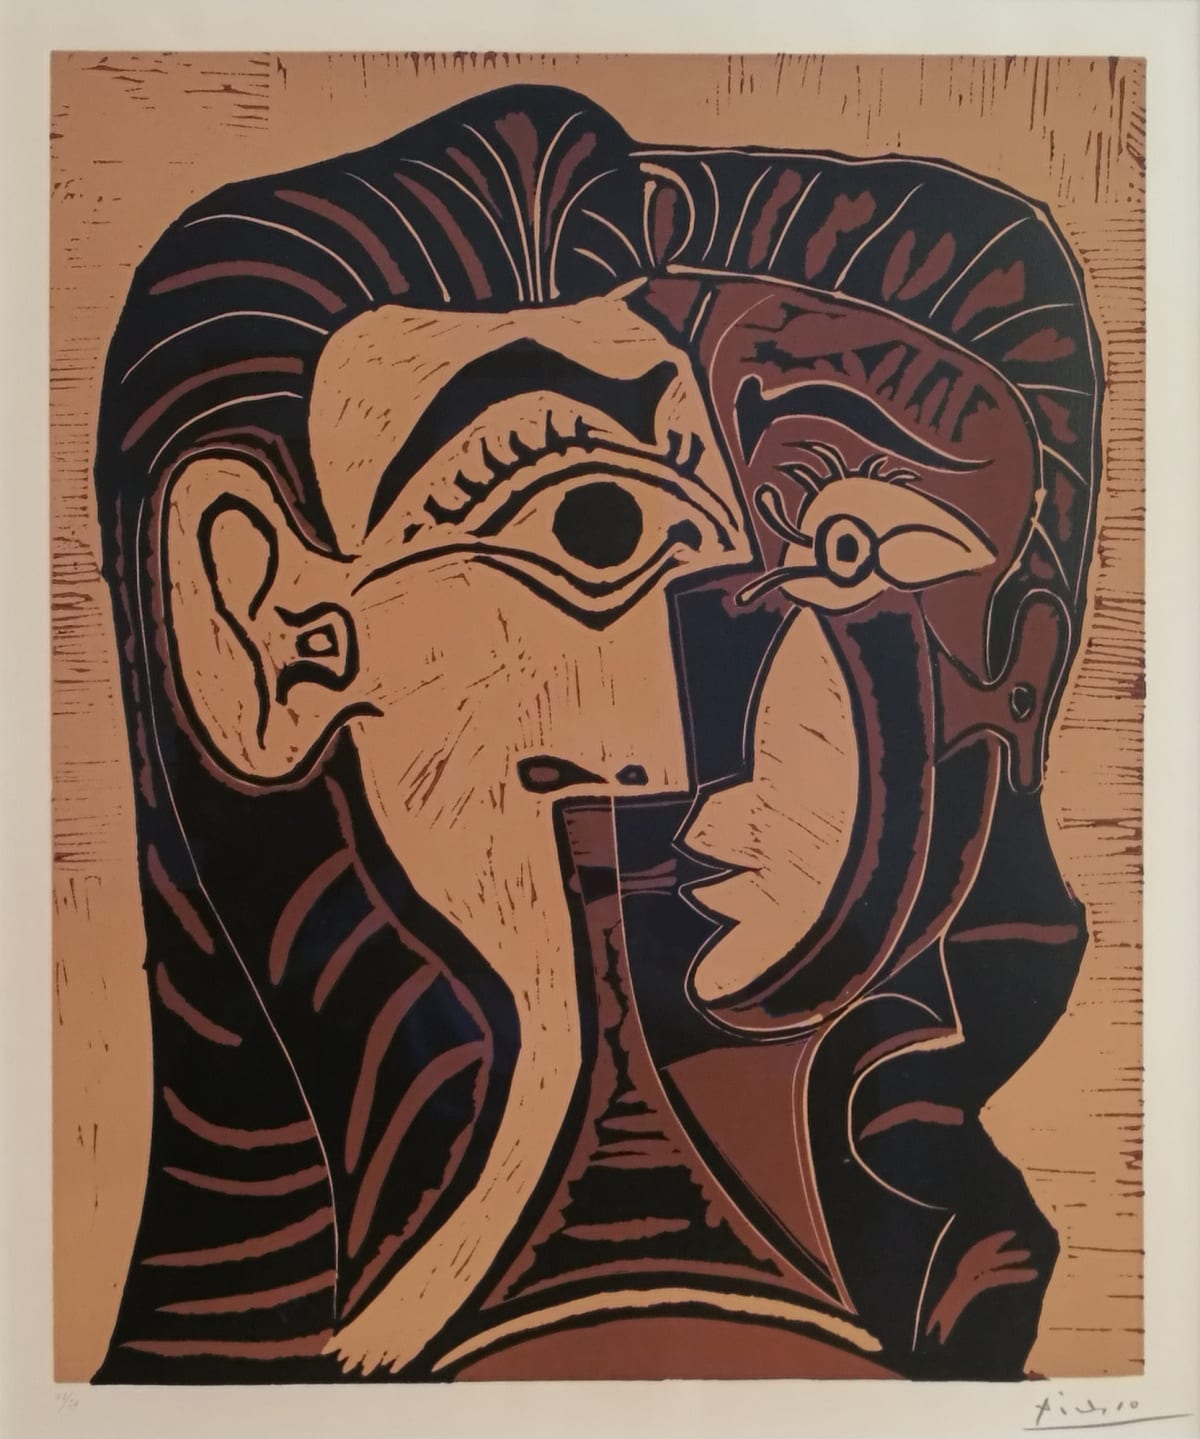 Pablo Picasso Portrait de Jacqueline de Face. I, 1963 Linocut, printed in color on Arches paper Unframed 64 x 52,6 cm (25 1/4 x 20 5/8 inches) Framed 108 x 93 cm (42 ½ x 36 5/8 inches) Edition 48/50 (IIIe état B) Printed by Arnèra (Vallauris)